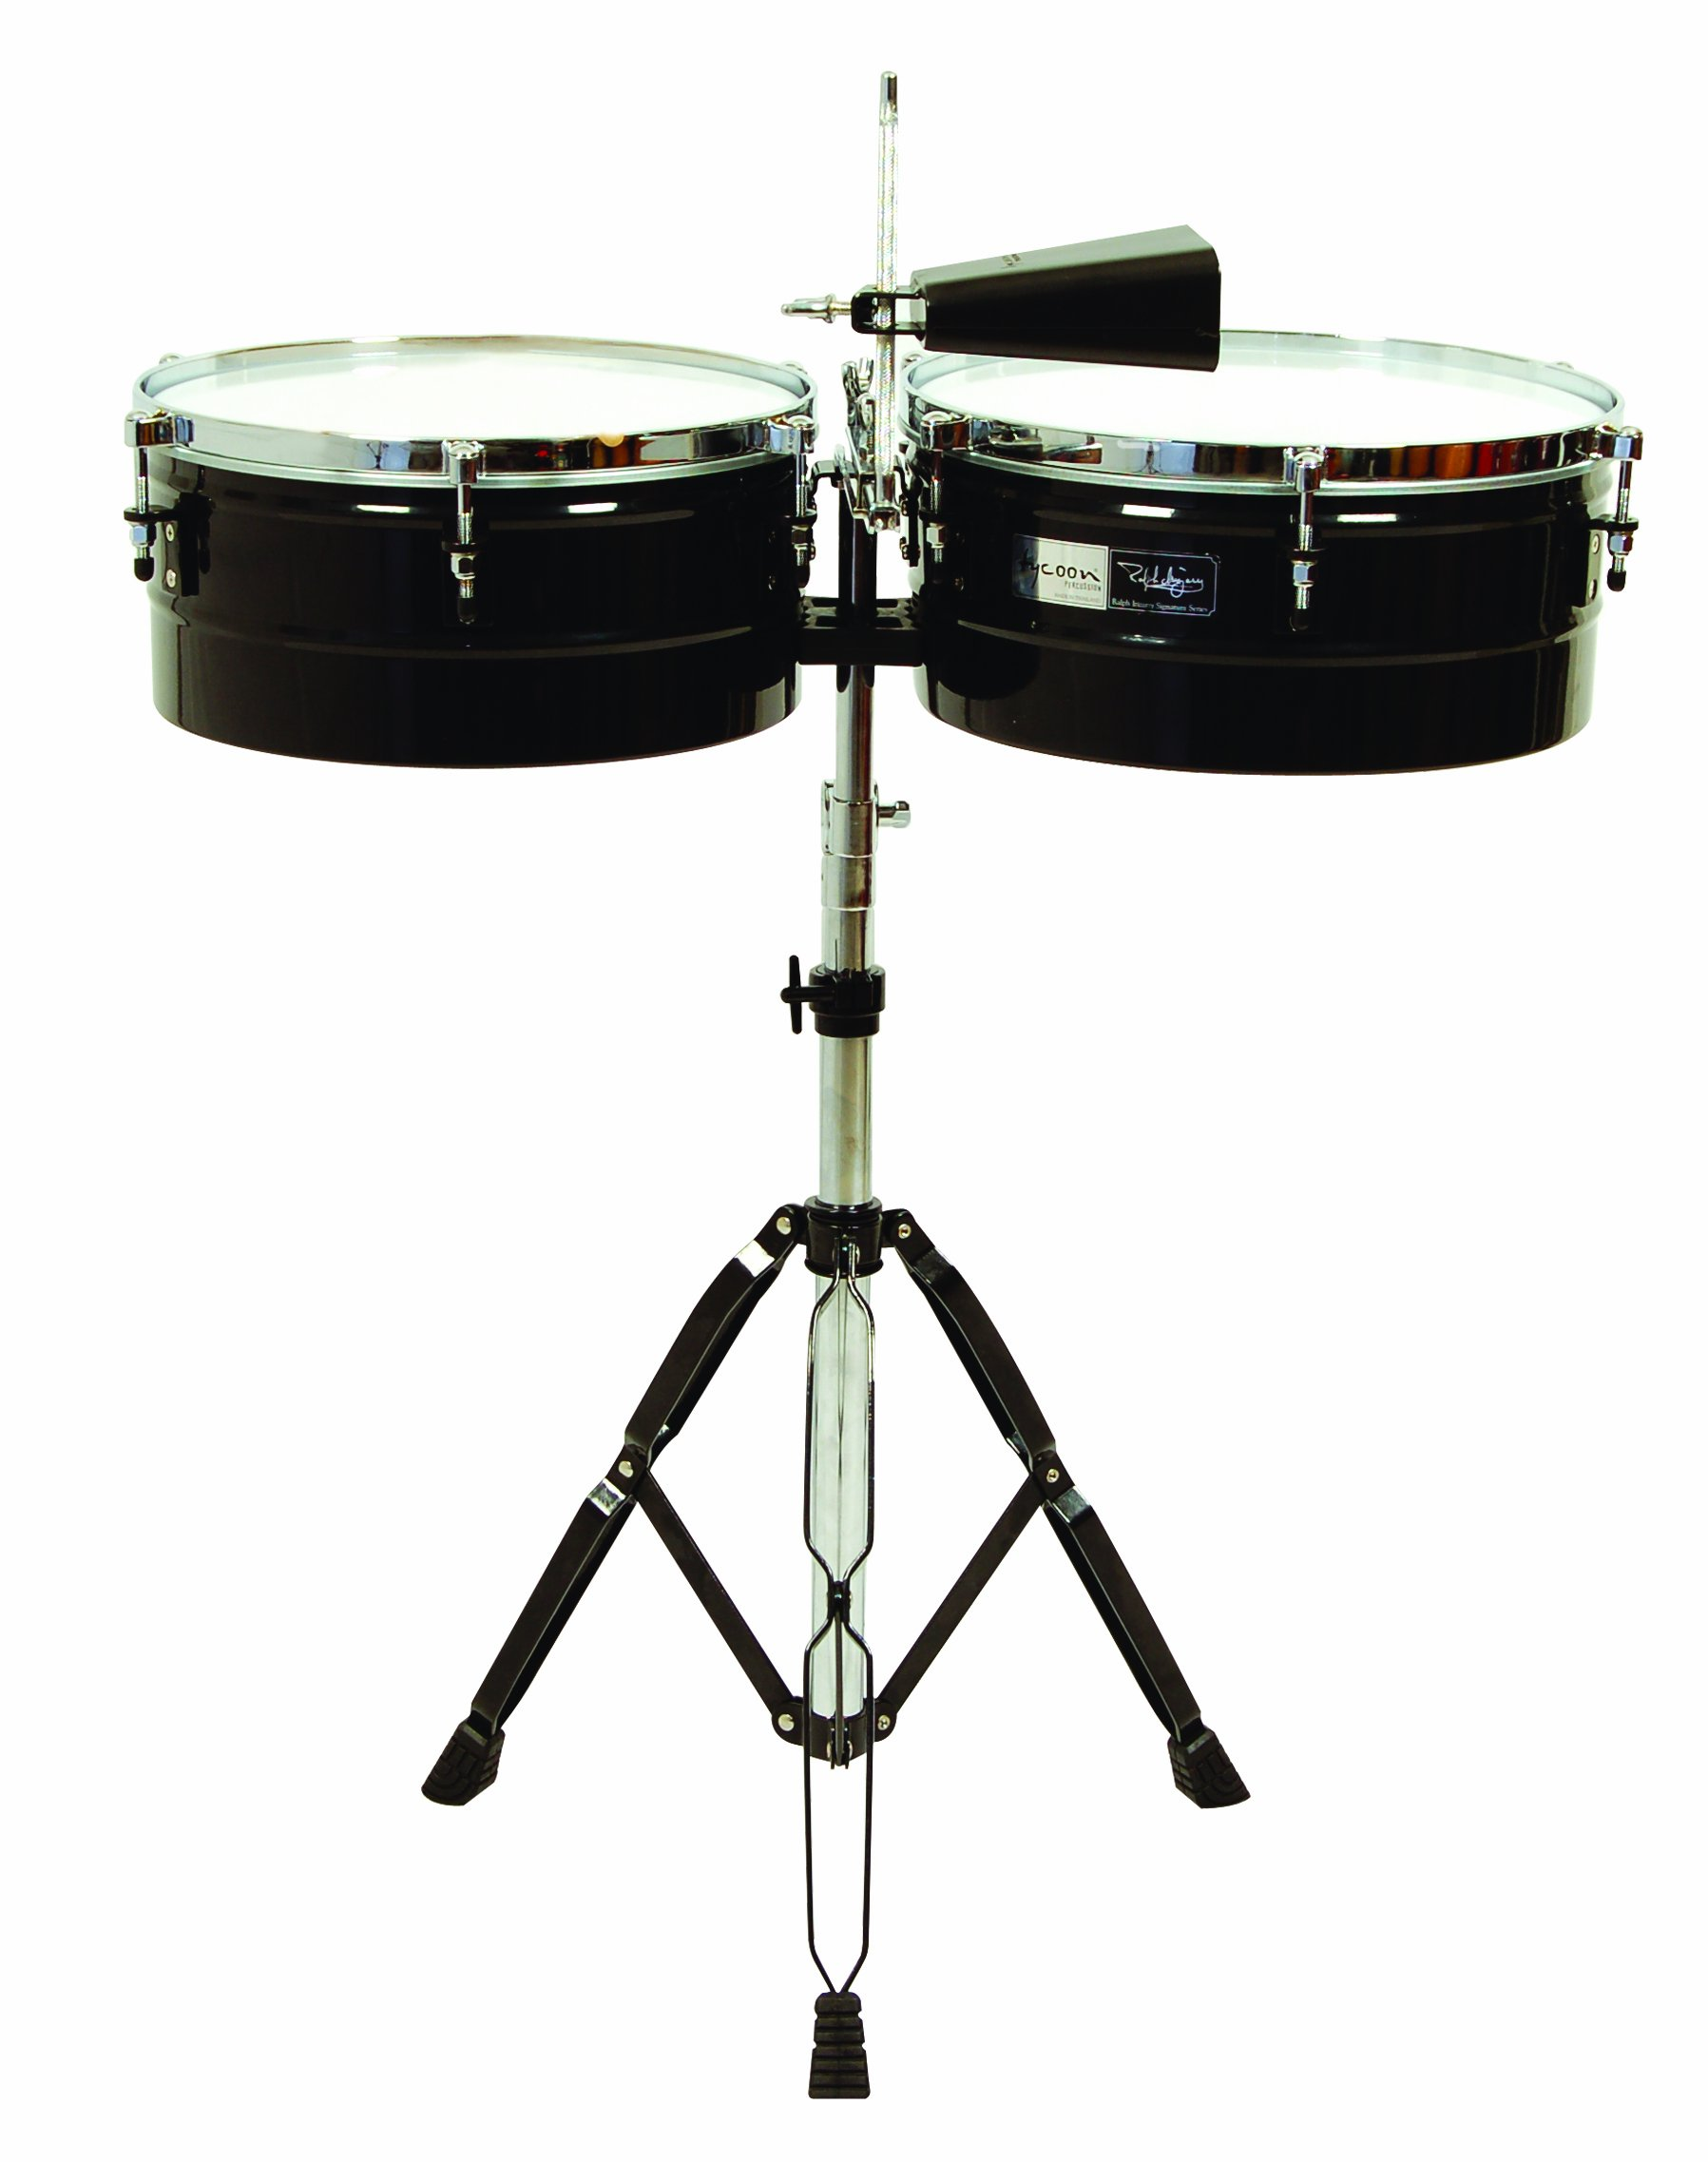 Tycoon Percussion 14 Inch & 15 Inch Ralph Irizarry Signature Series Timbales